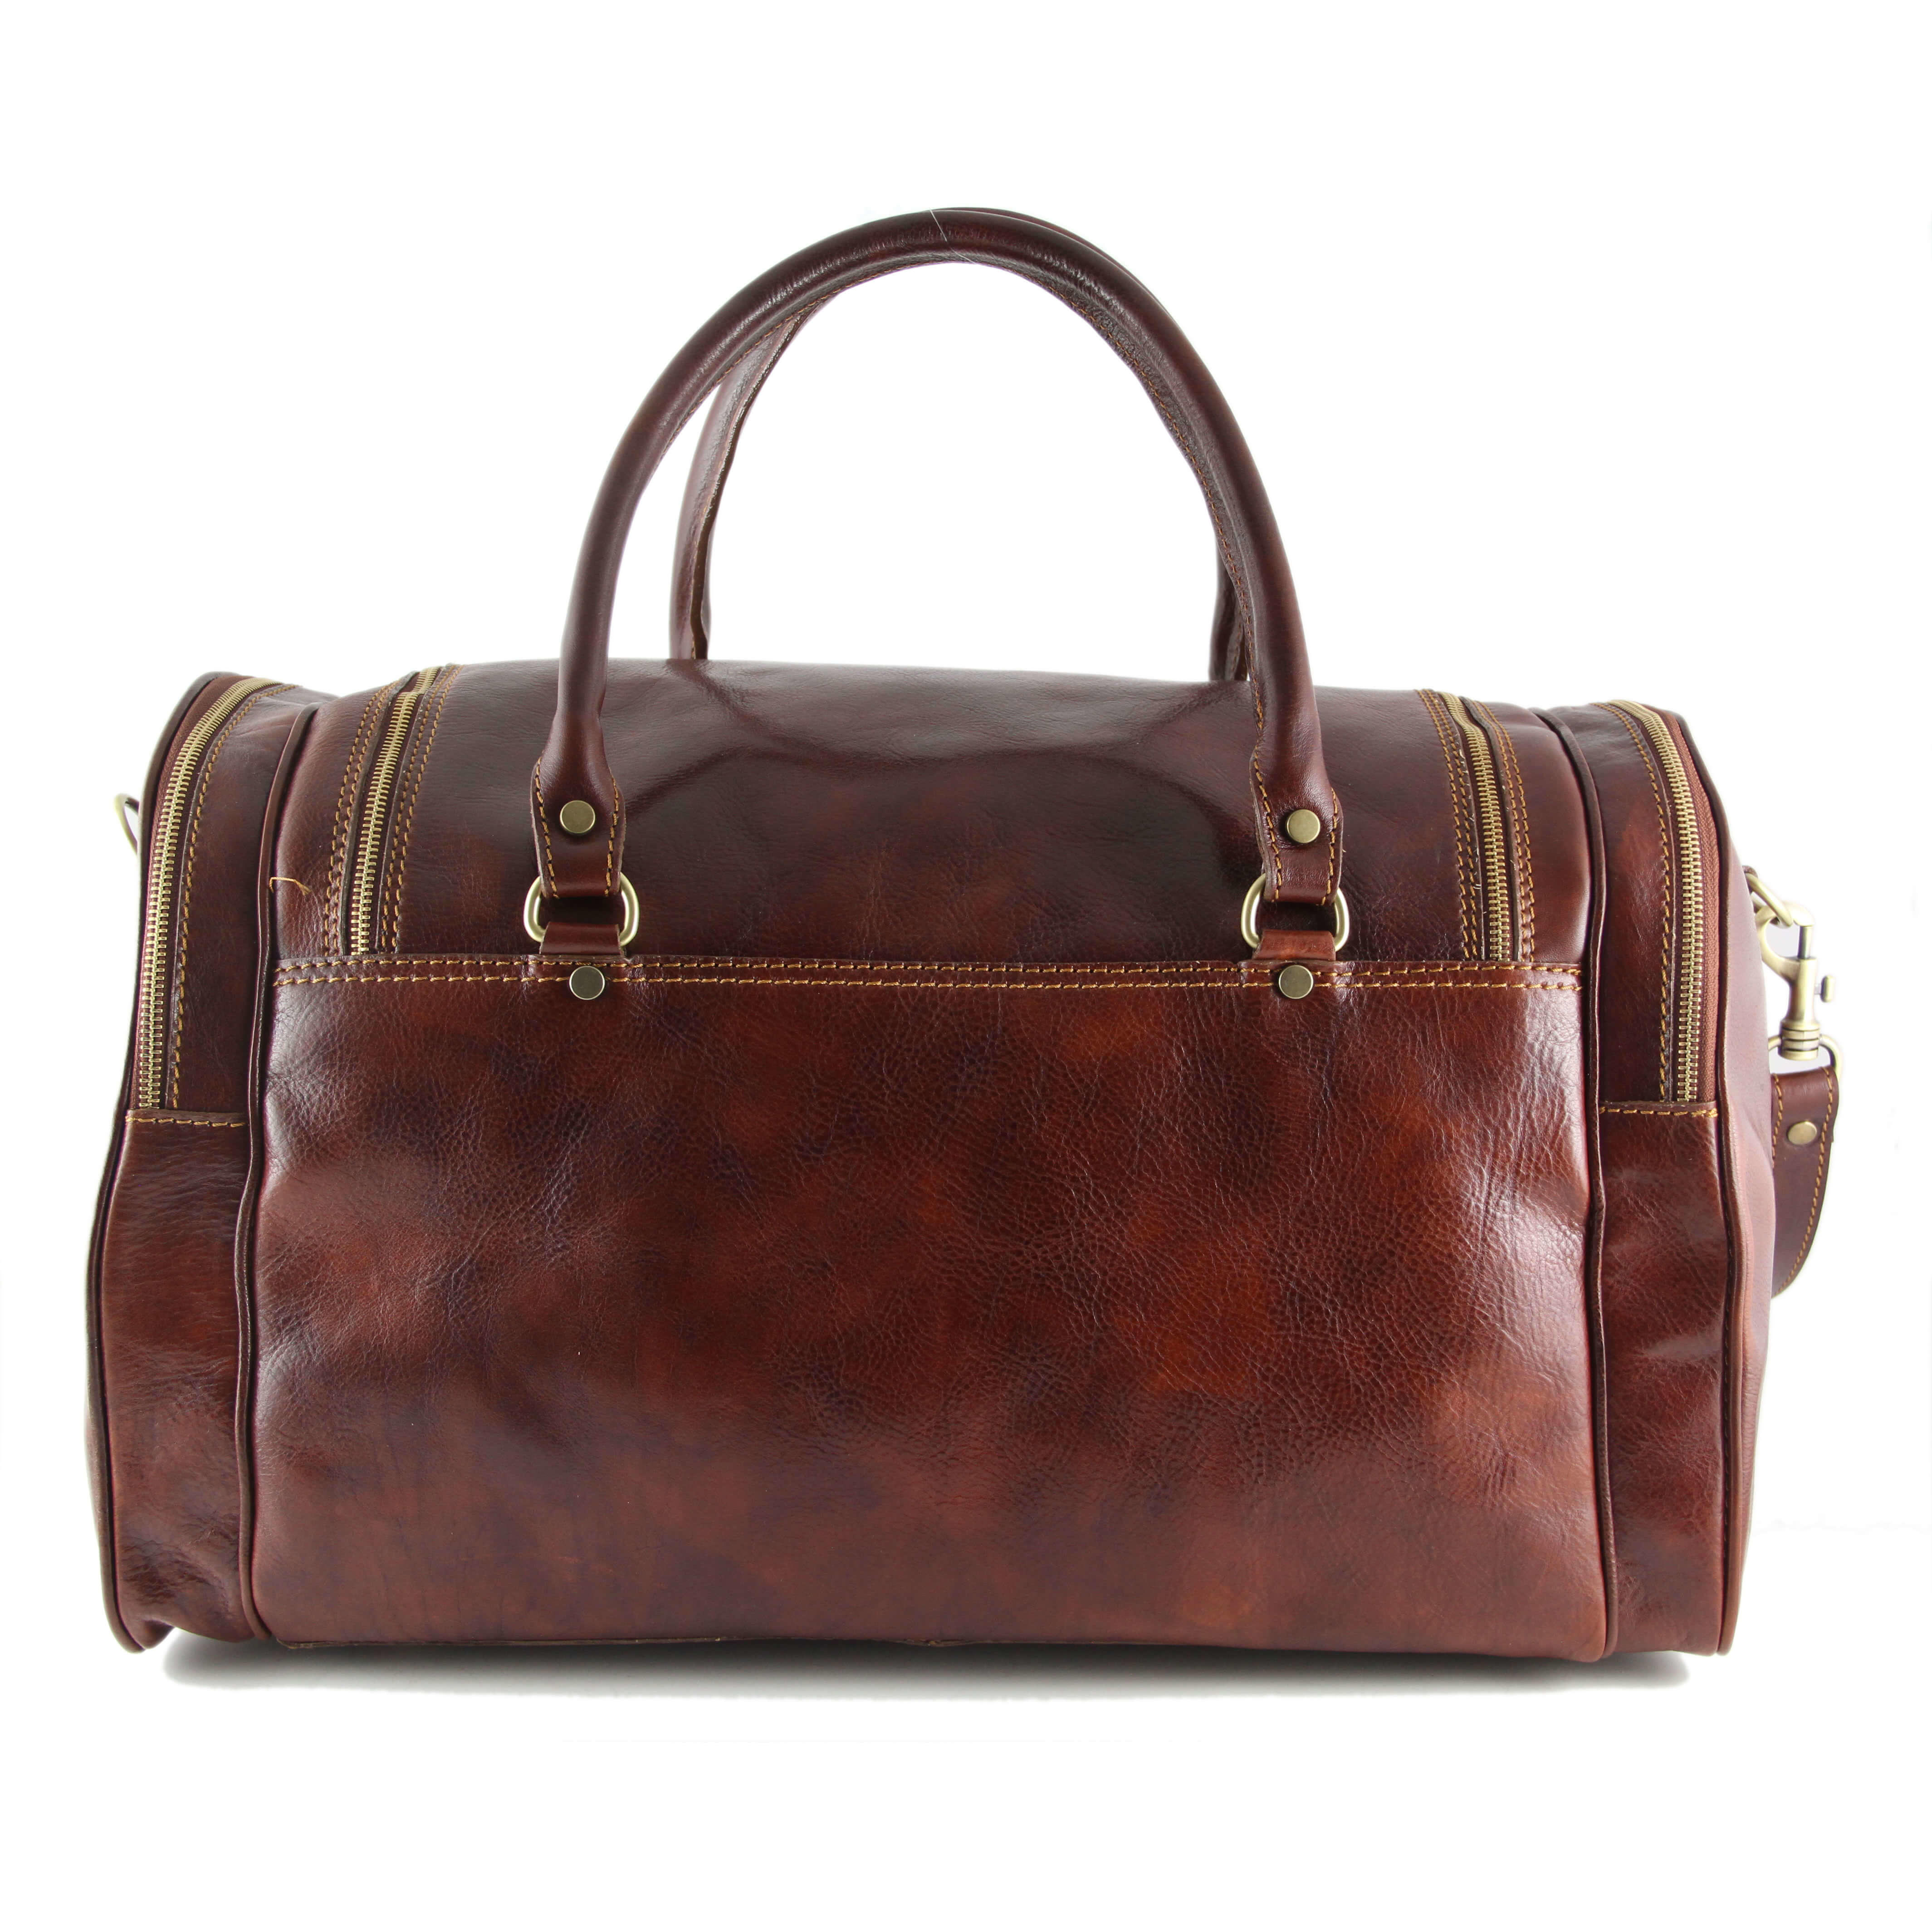 TL1048 Praga Leather Travel - Weekender - Duffel - Bag - Case &